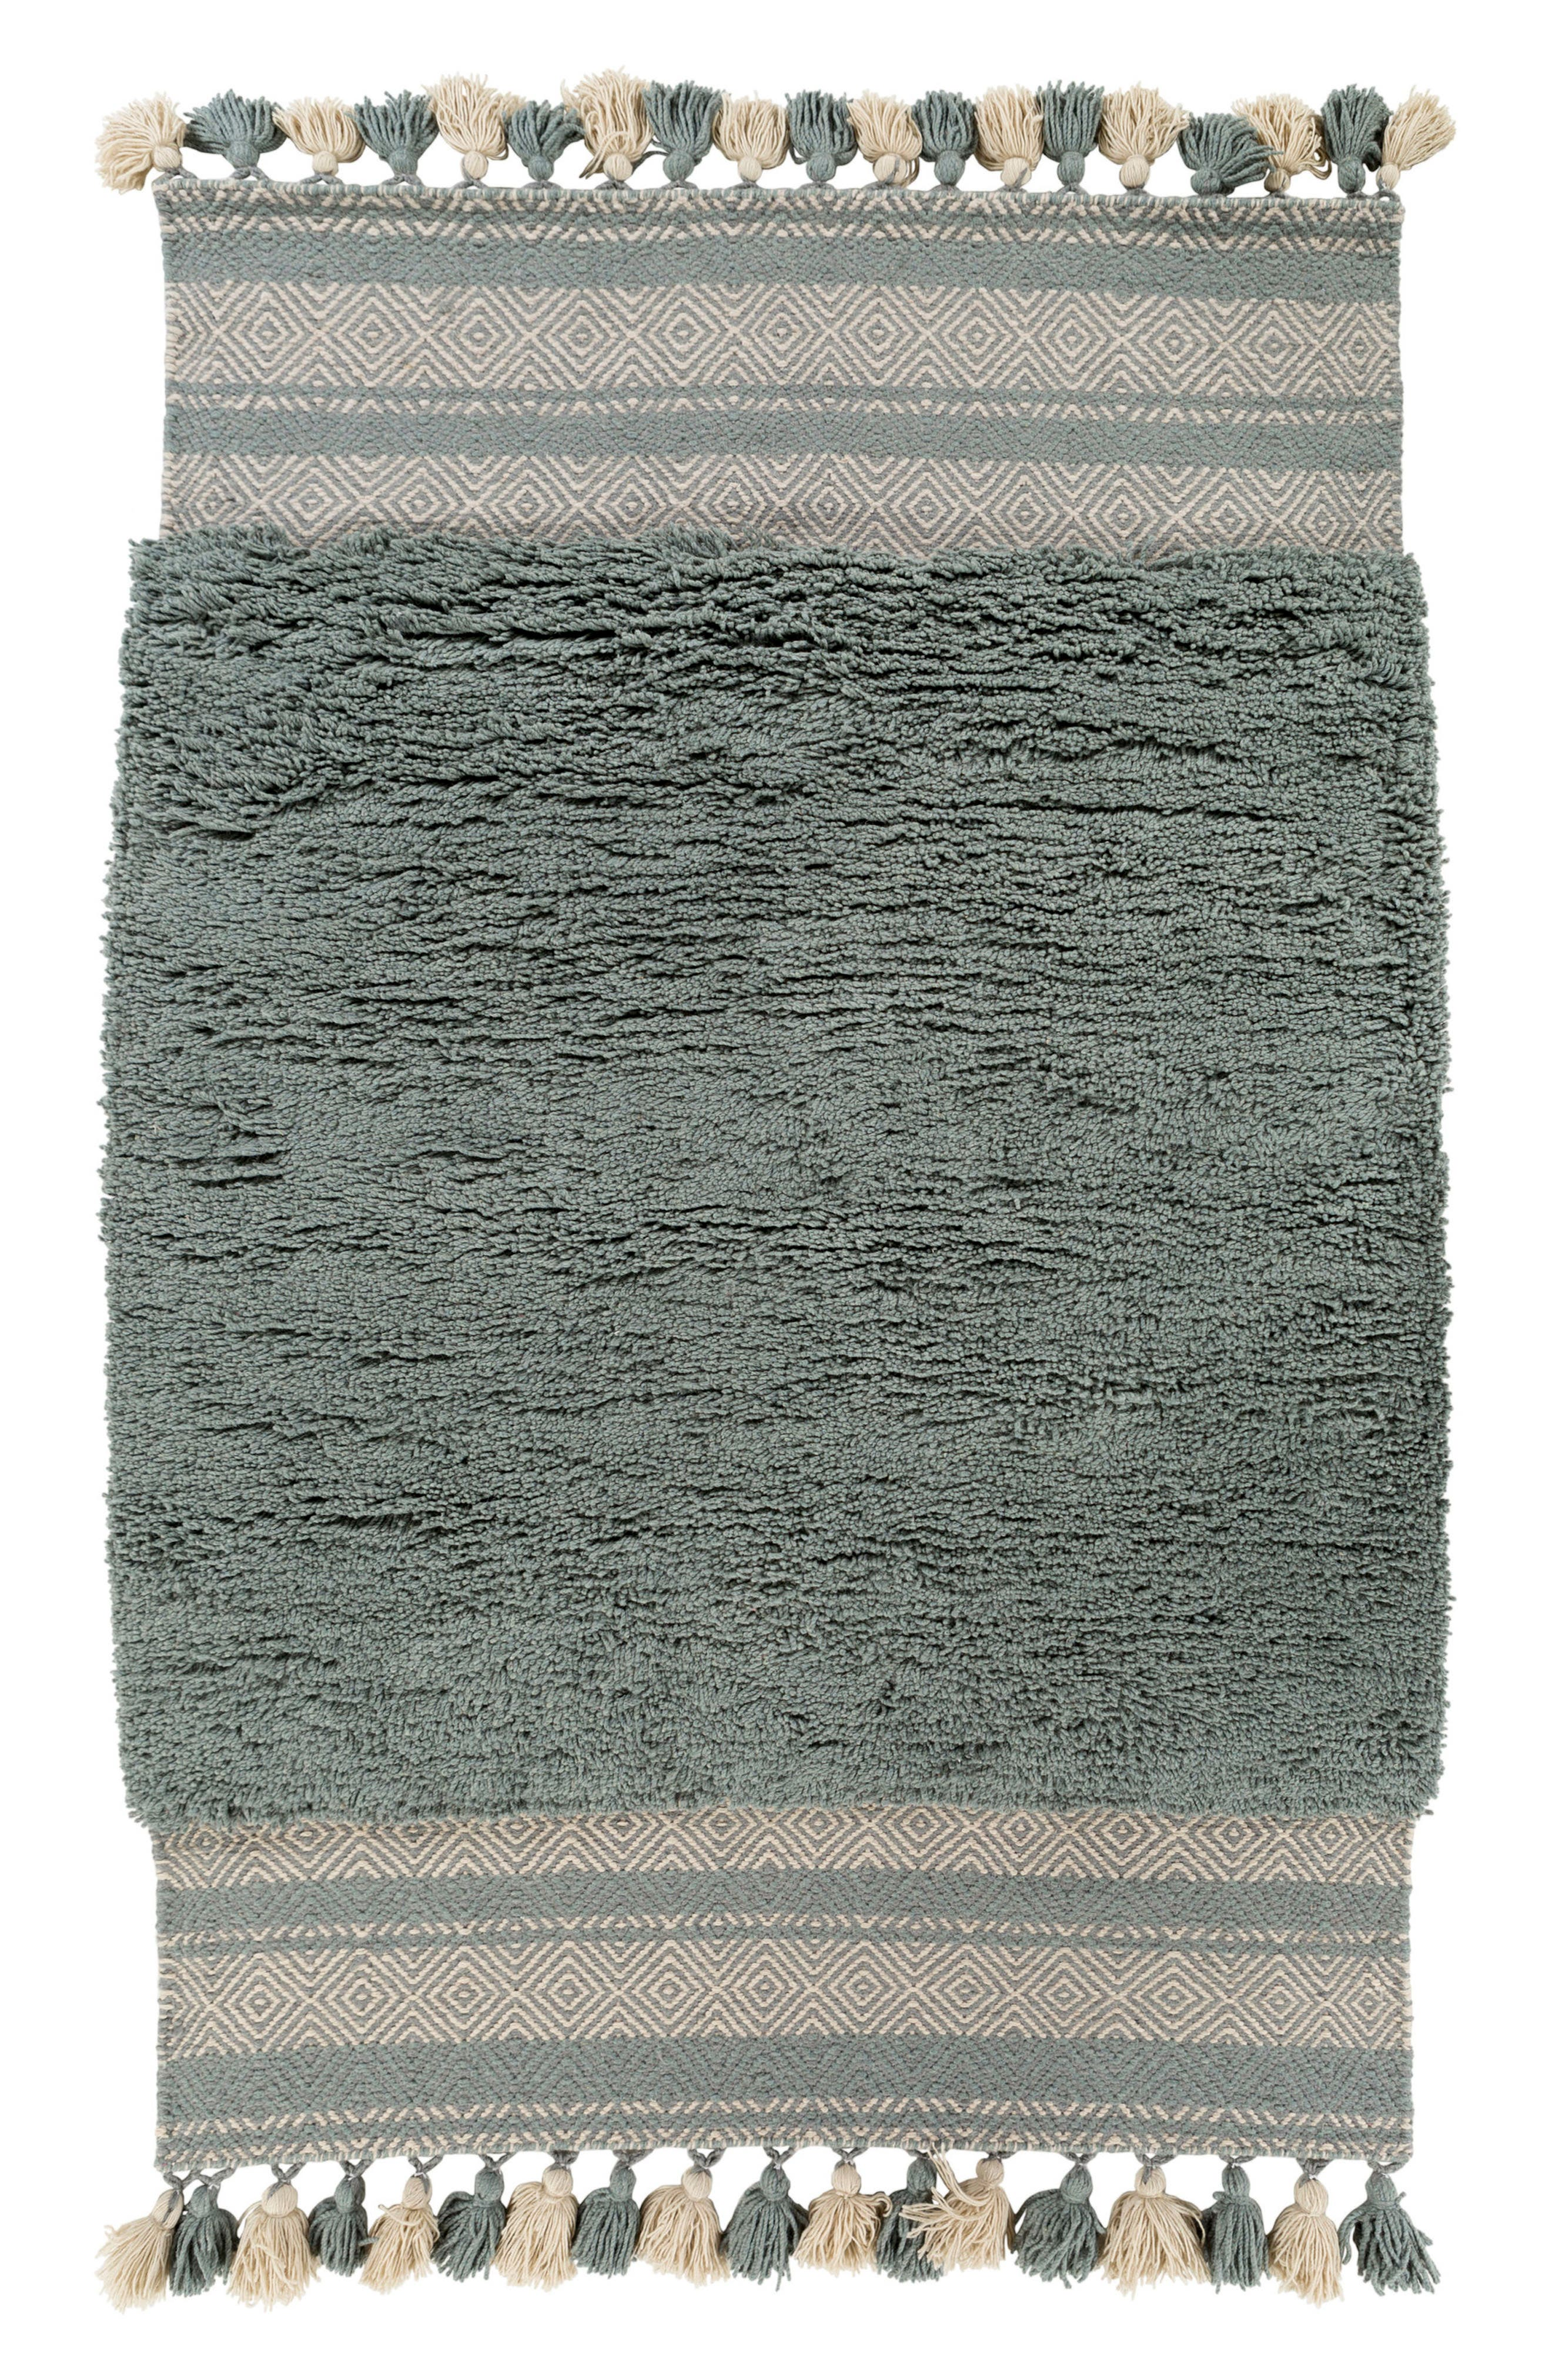 Korva Modern Handwoven Rug,                             Main thumbnail 2, color,